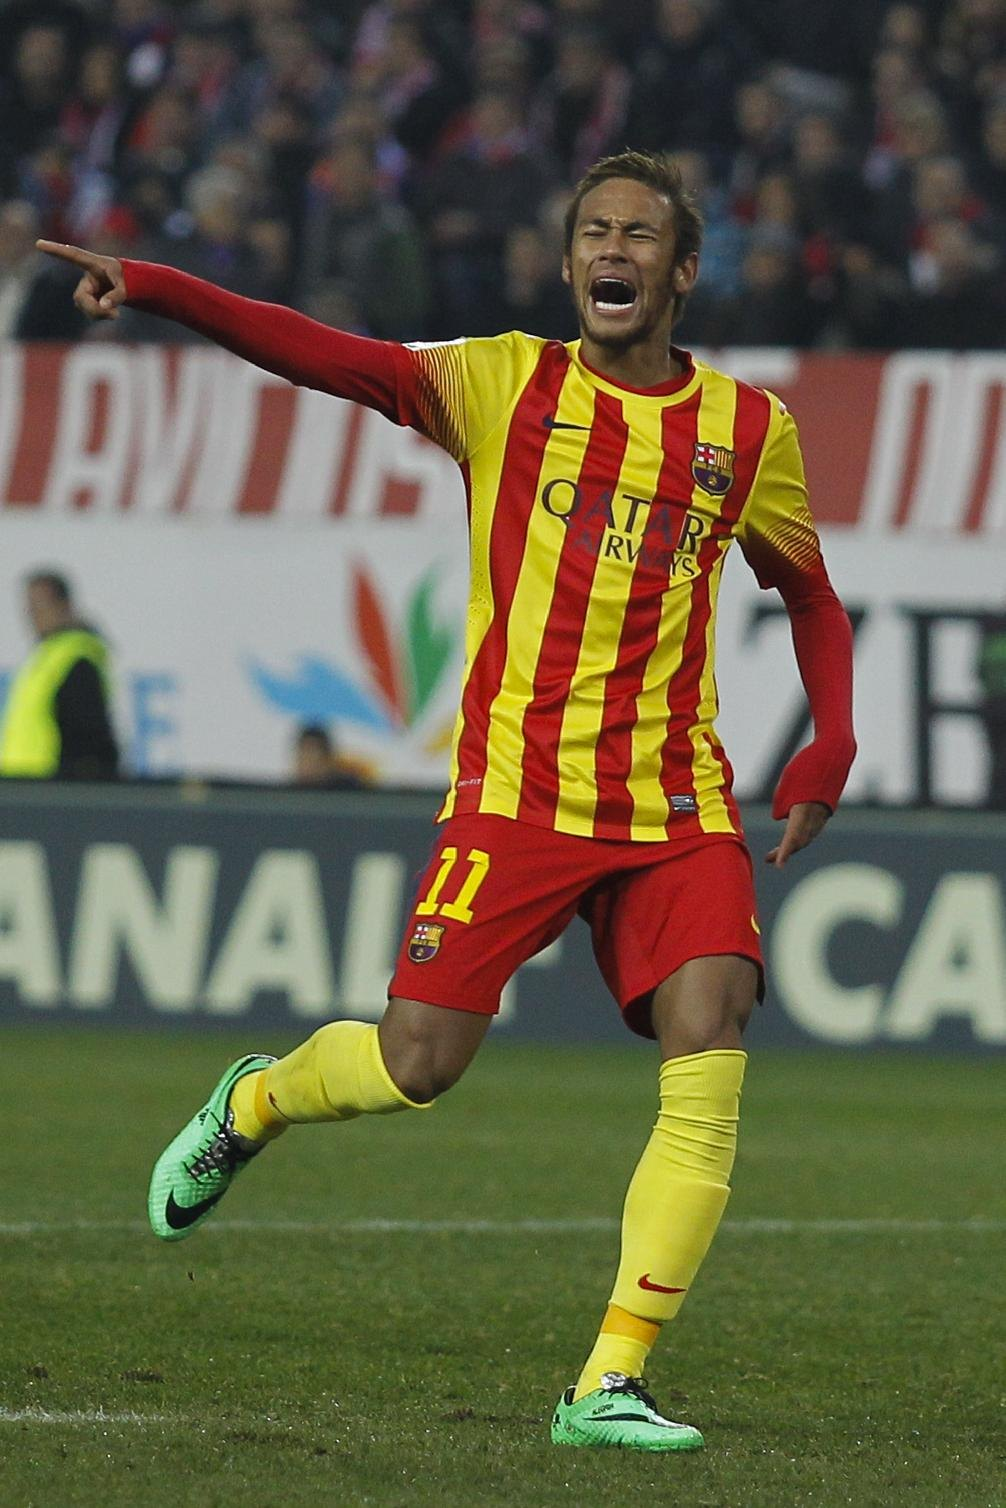 Neymar playing in Atletico Madrid vs Barcelona